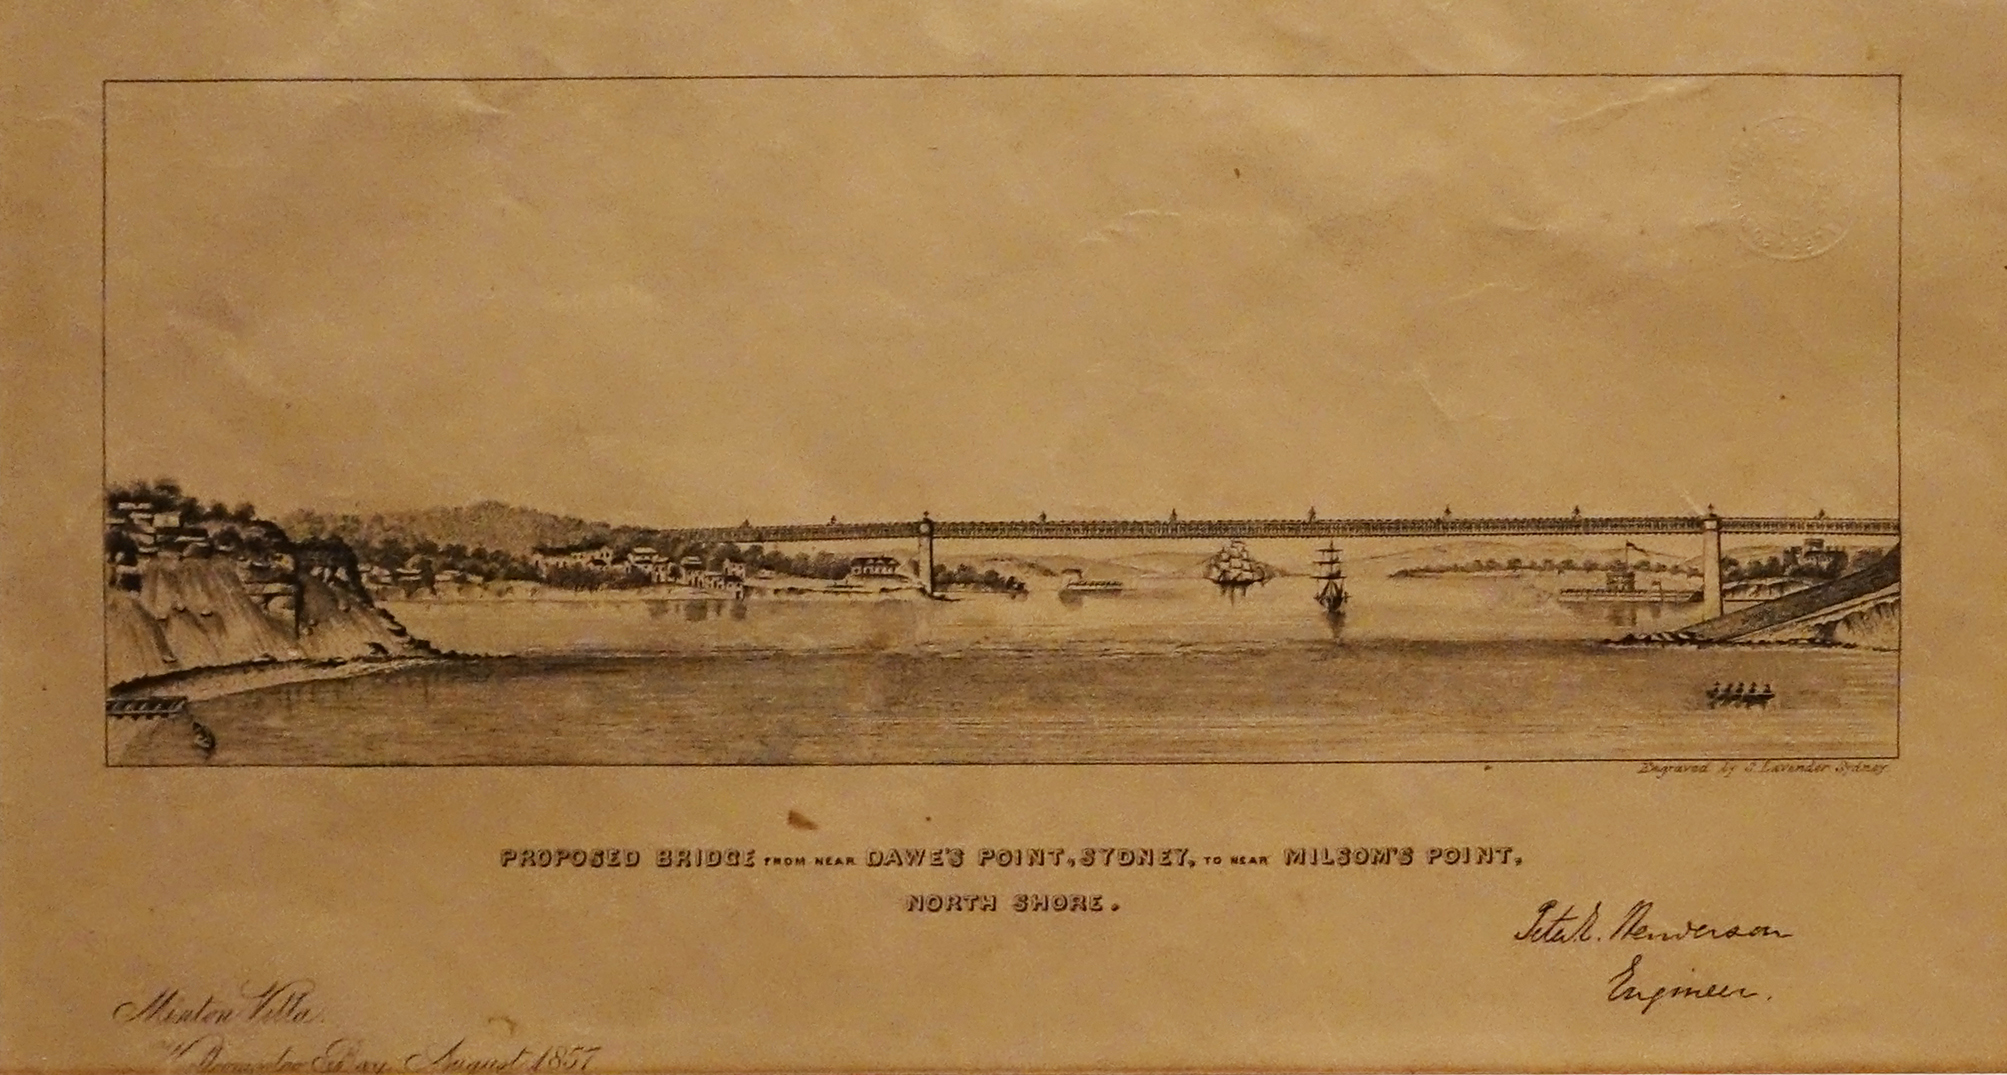 An engraving of a bridge spanning two land masses.